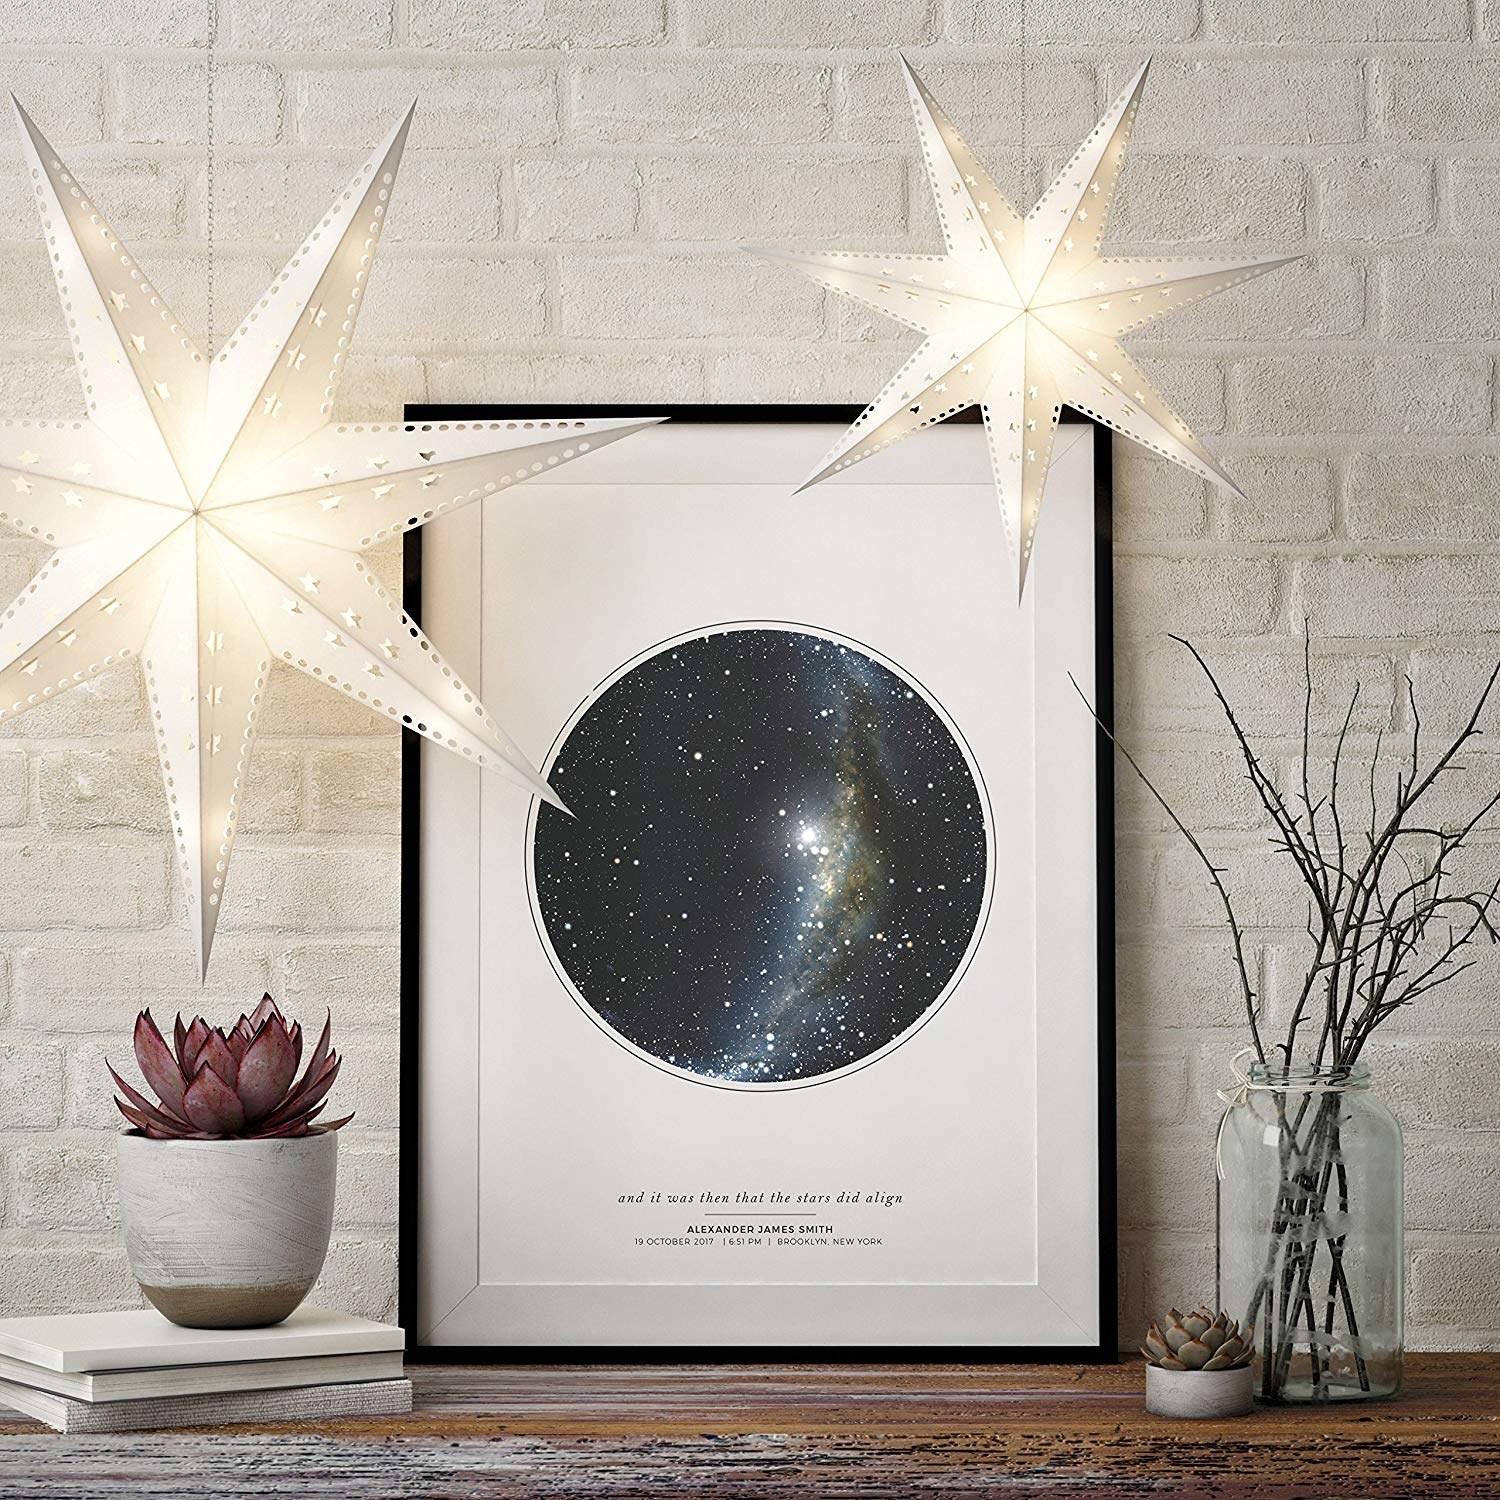 The customized star map.